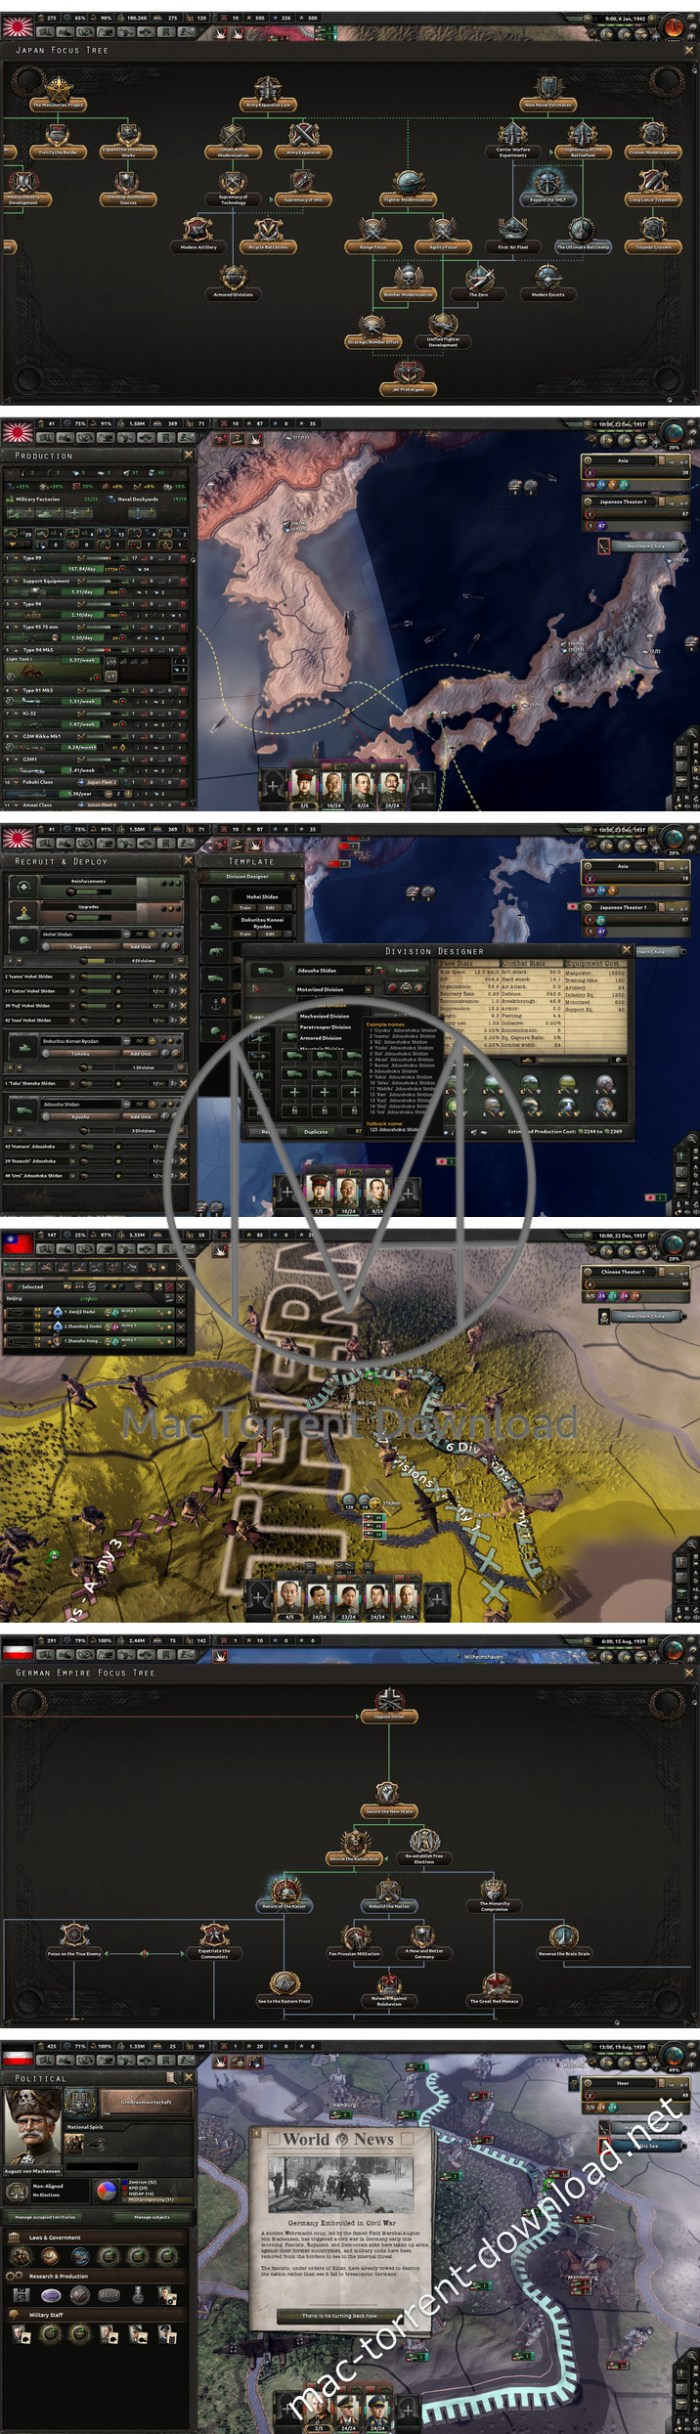 Hearts of iron 4 waking the tiger 1 5 2 download | Hearts of Iron IV